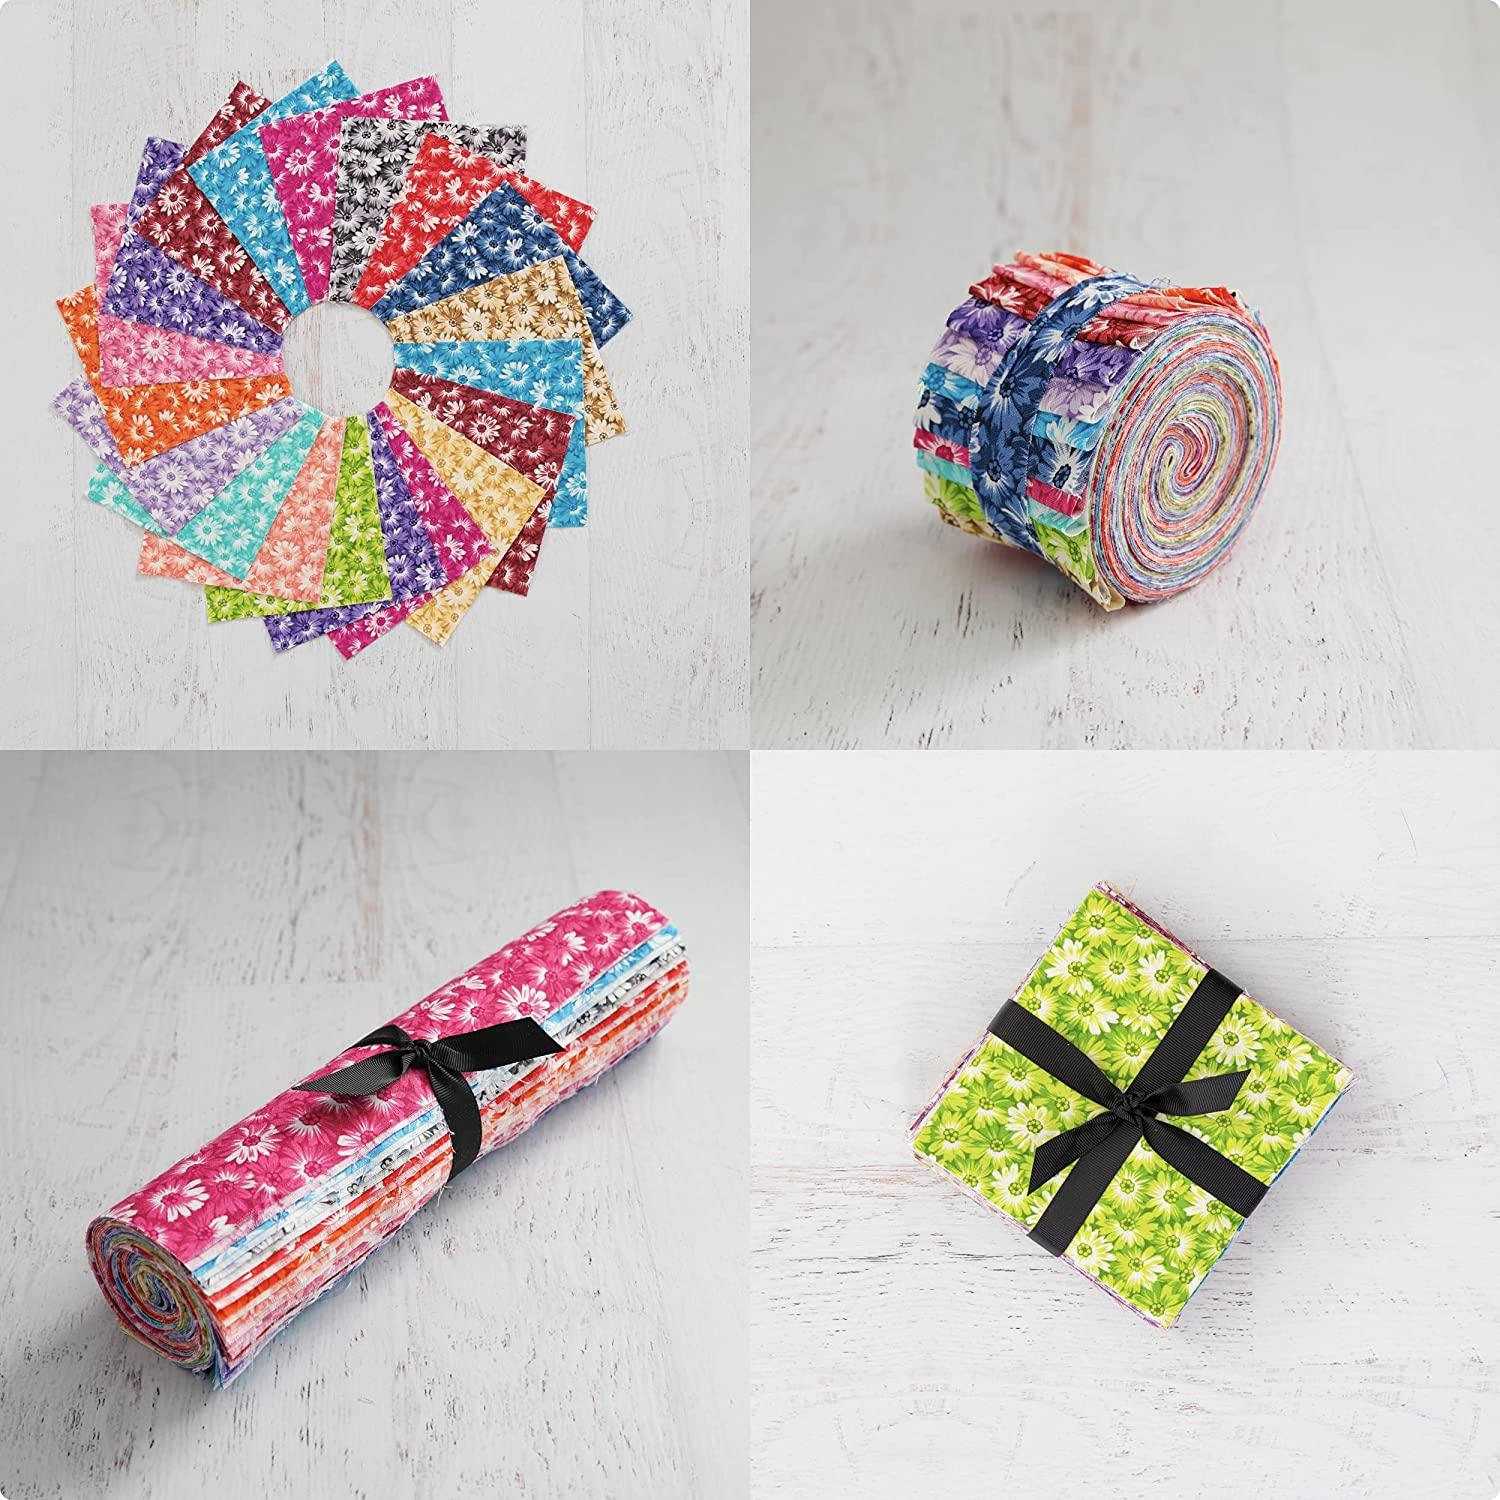 Daisy Do 3 Piece Quilters Manufacturer OFFicial shop Bundle Includes: P Max 67% OFF Jelly - Roll Charm